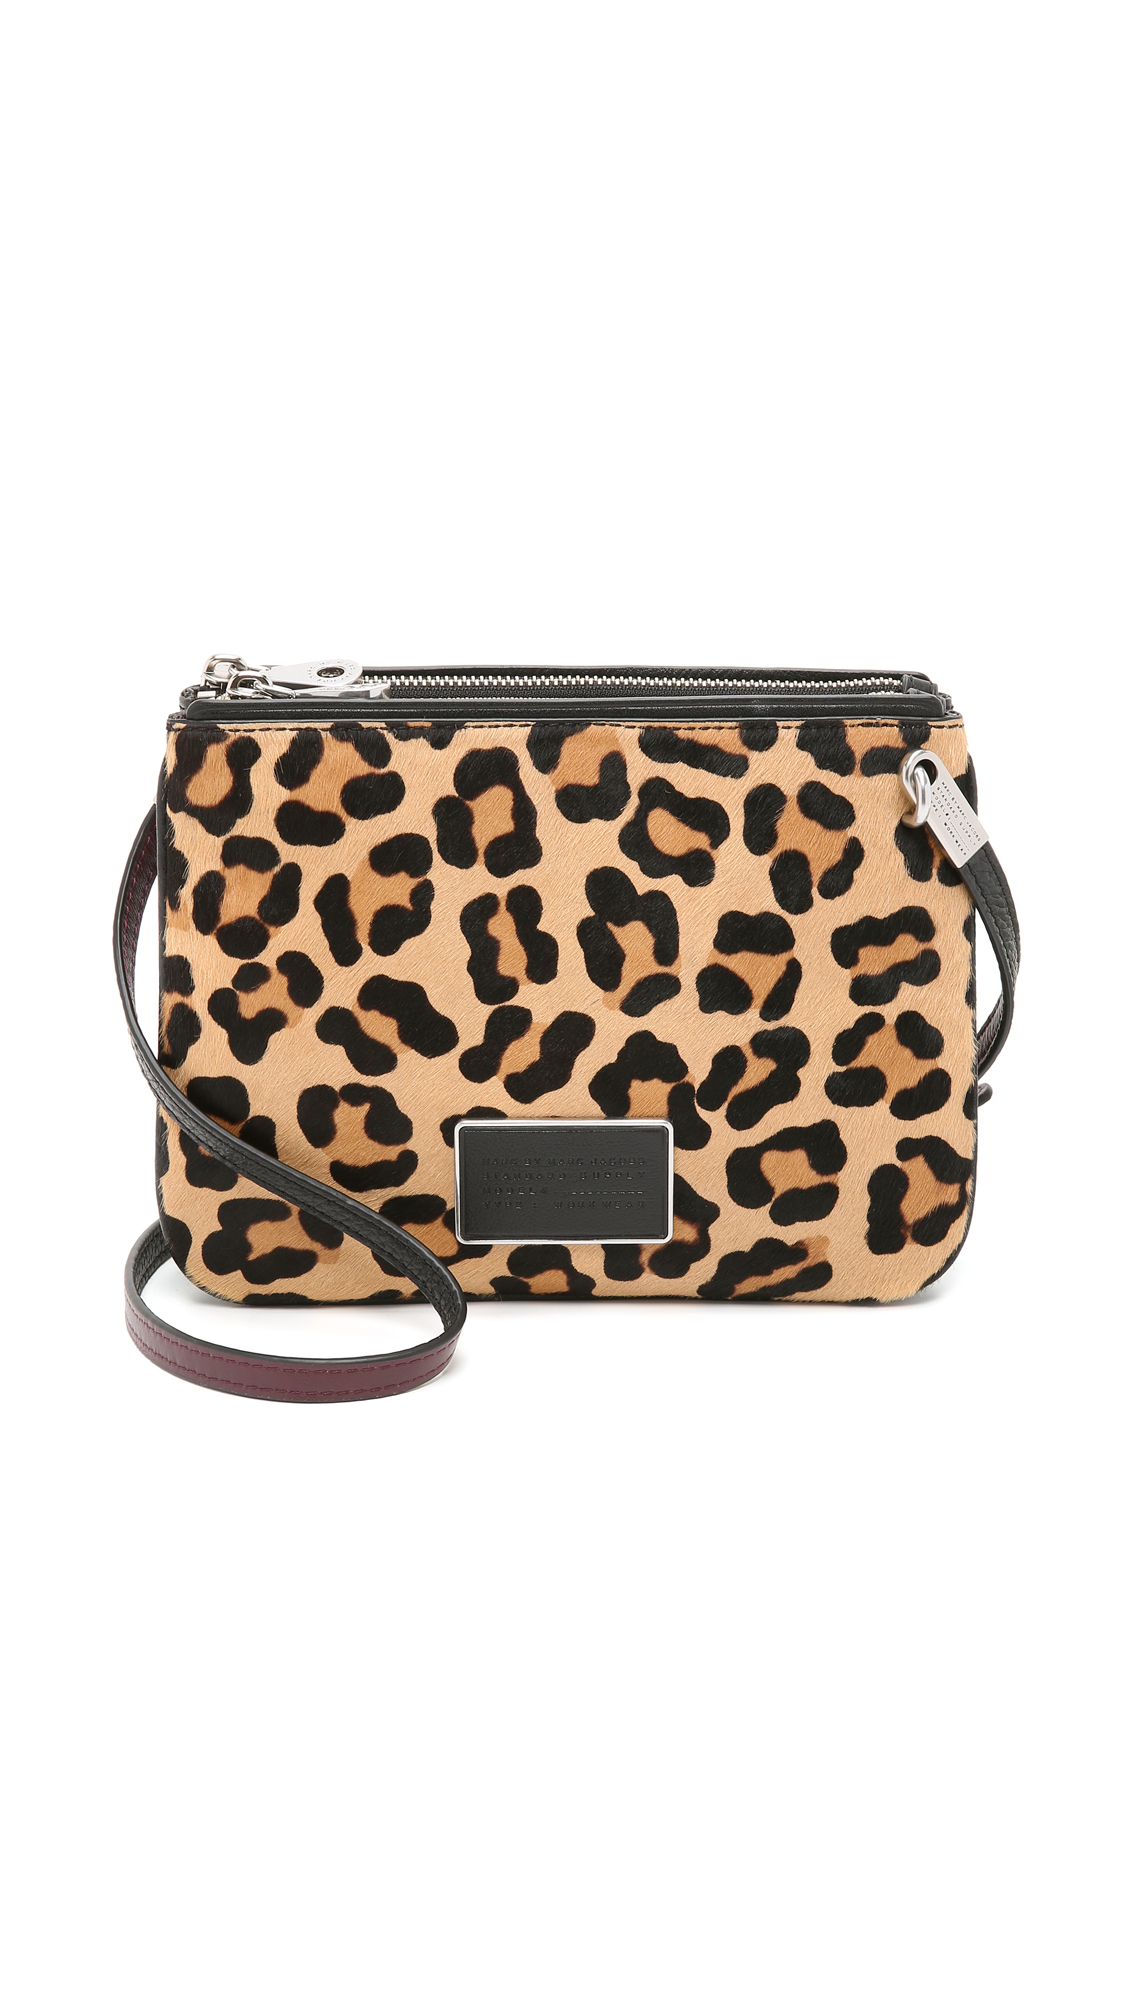 0120cf53cc11 Marc By Marc Jacobs Ligero Leopard-Print Calf Hair Double Percy Crossbody  Bag